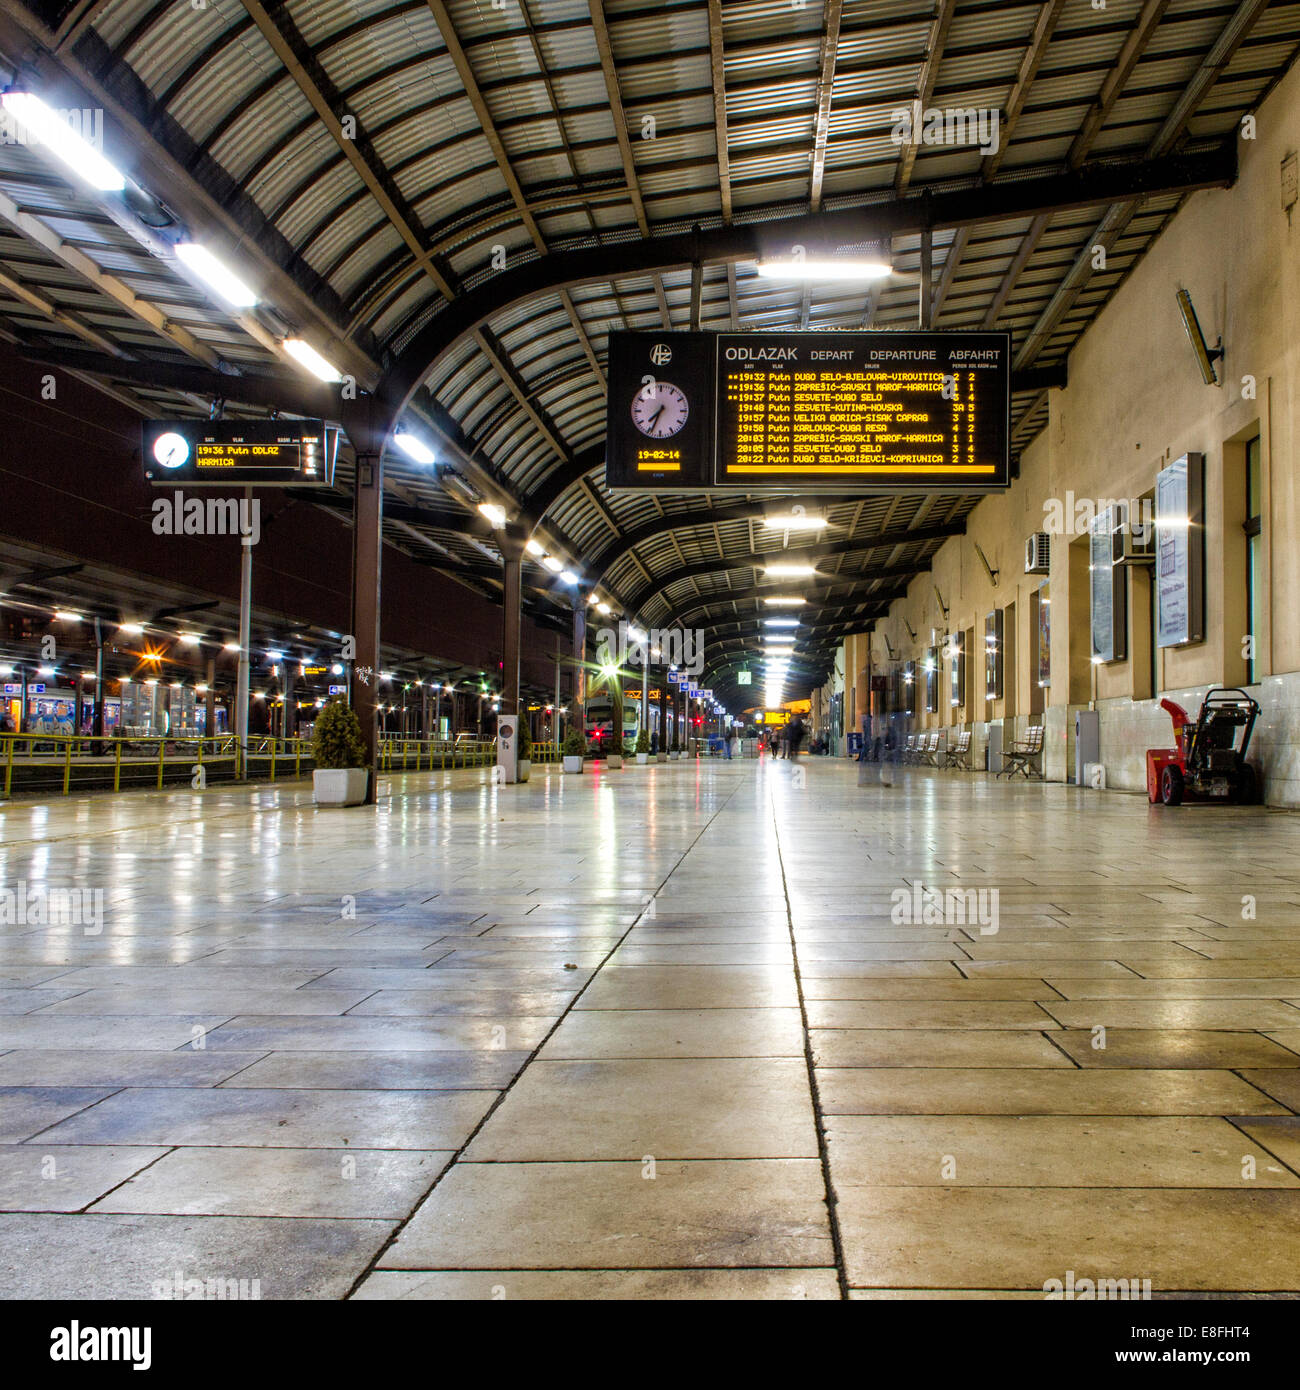 Croatia, Train platform - Stock Image